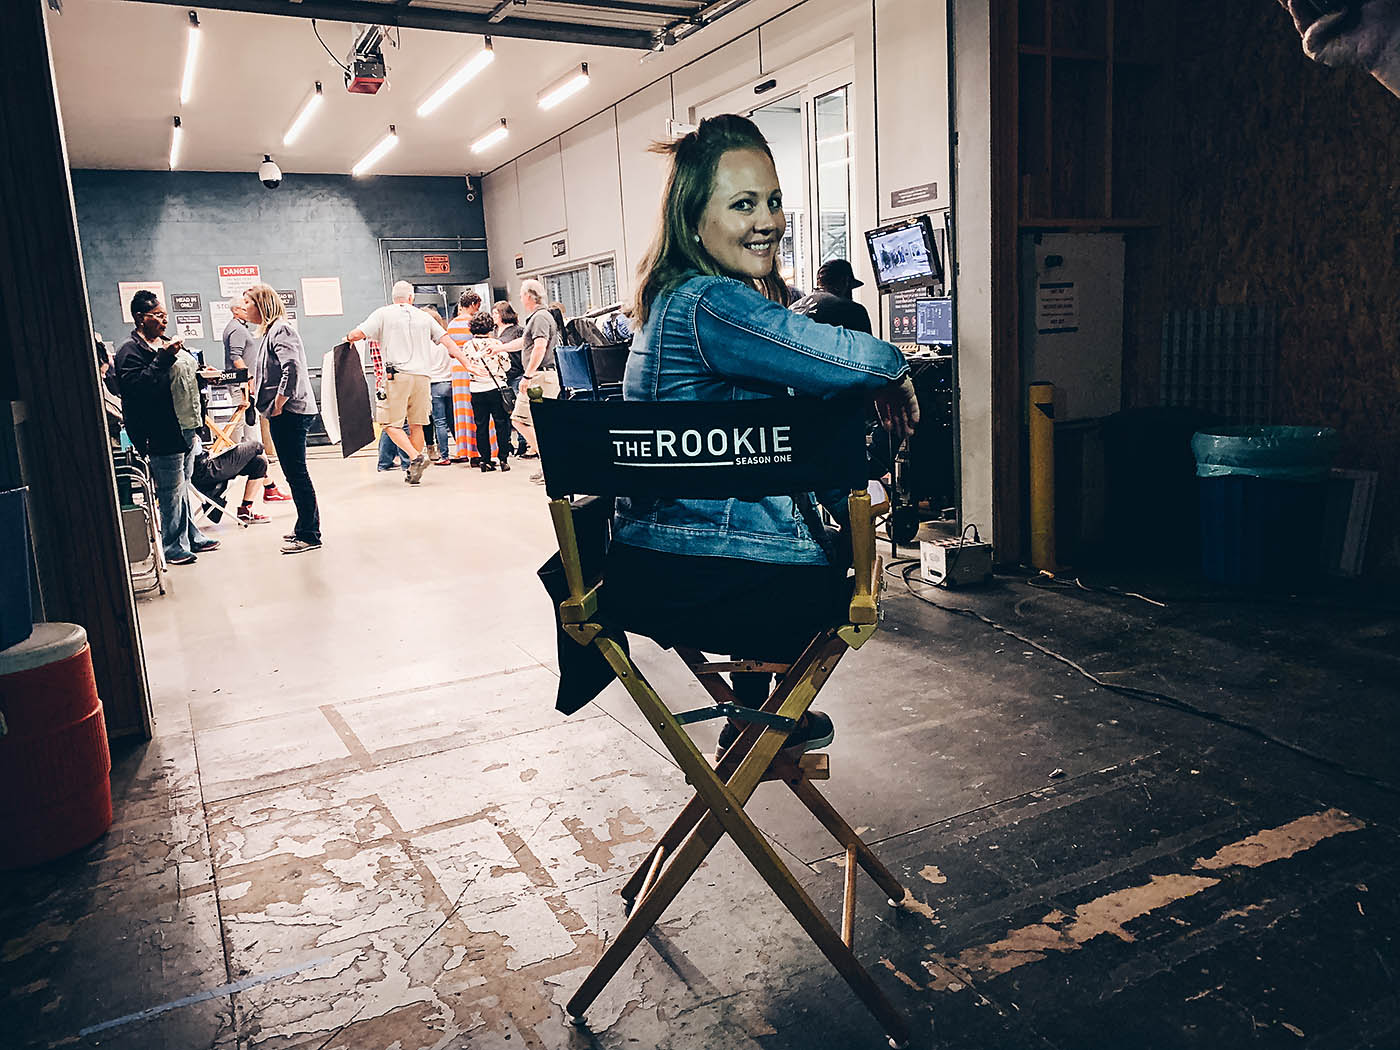 On set of ABC's The Rookie